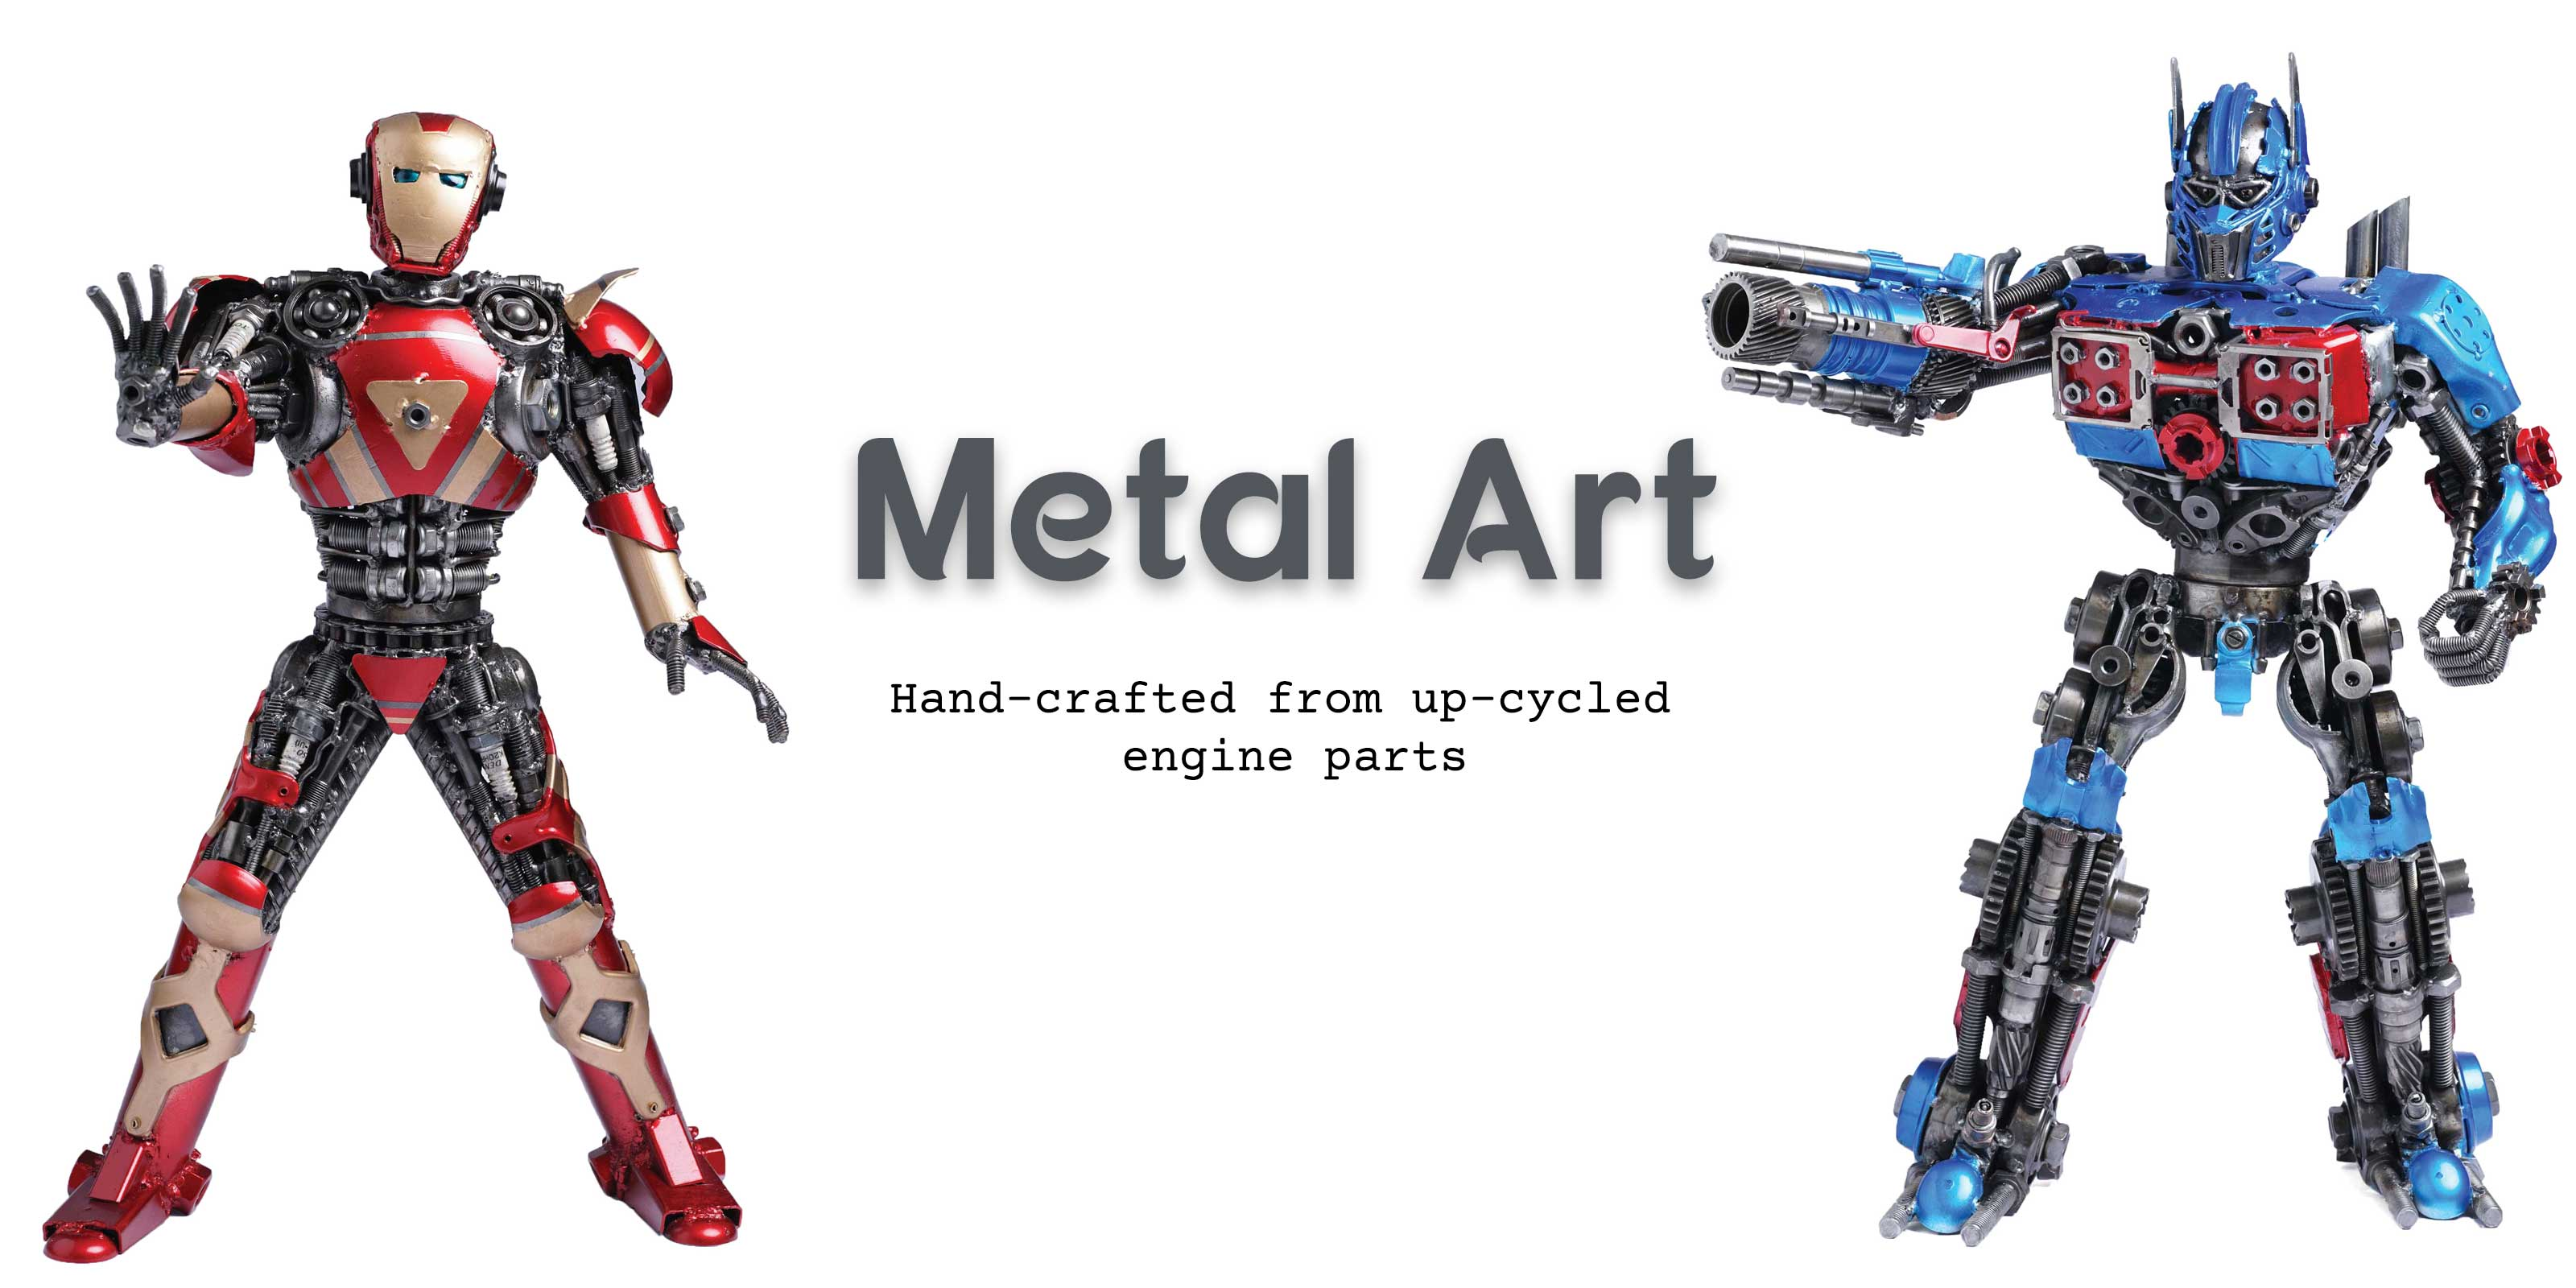 Metal art hand-crafted from car and bike parts